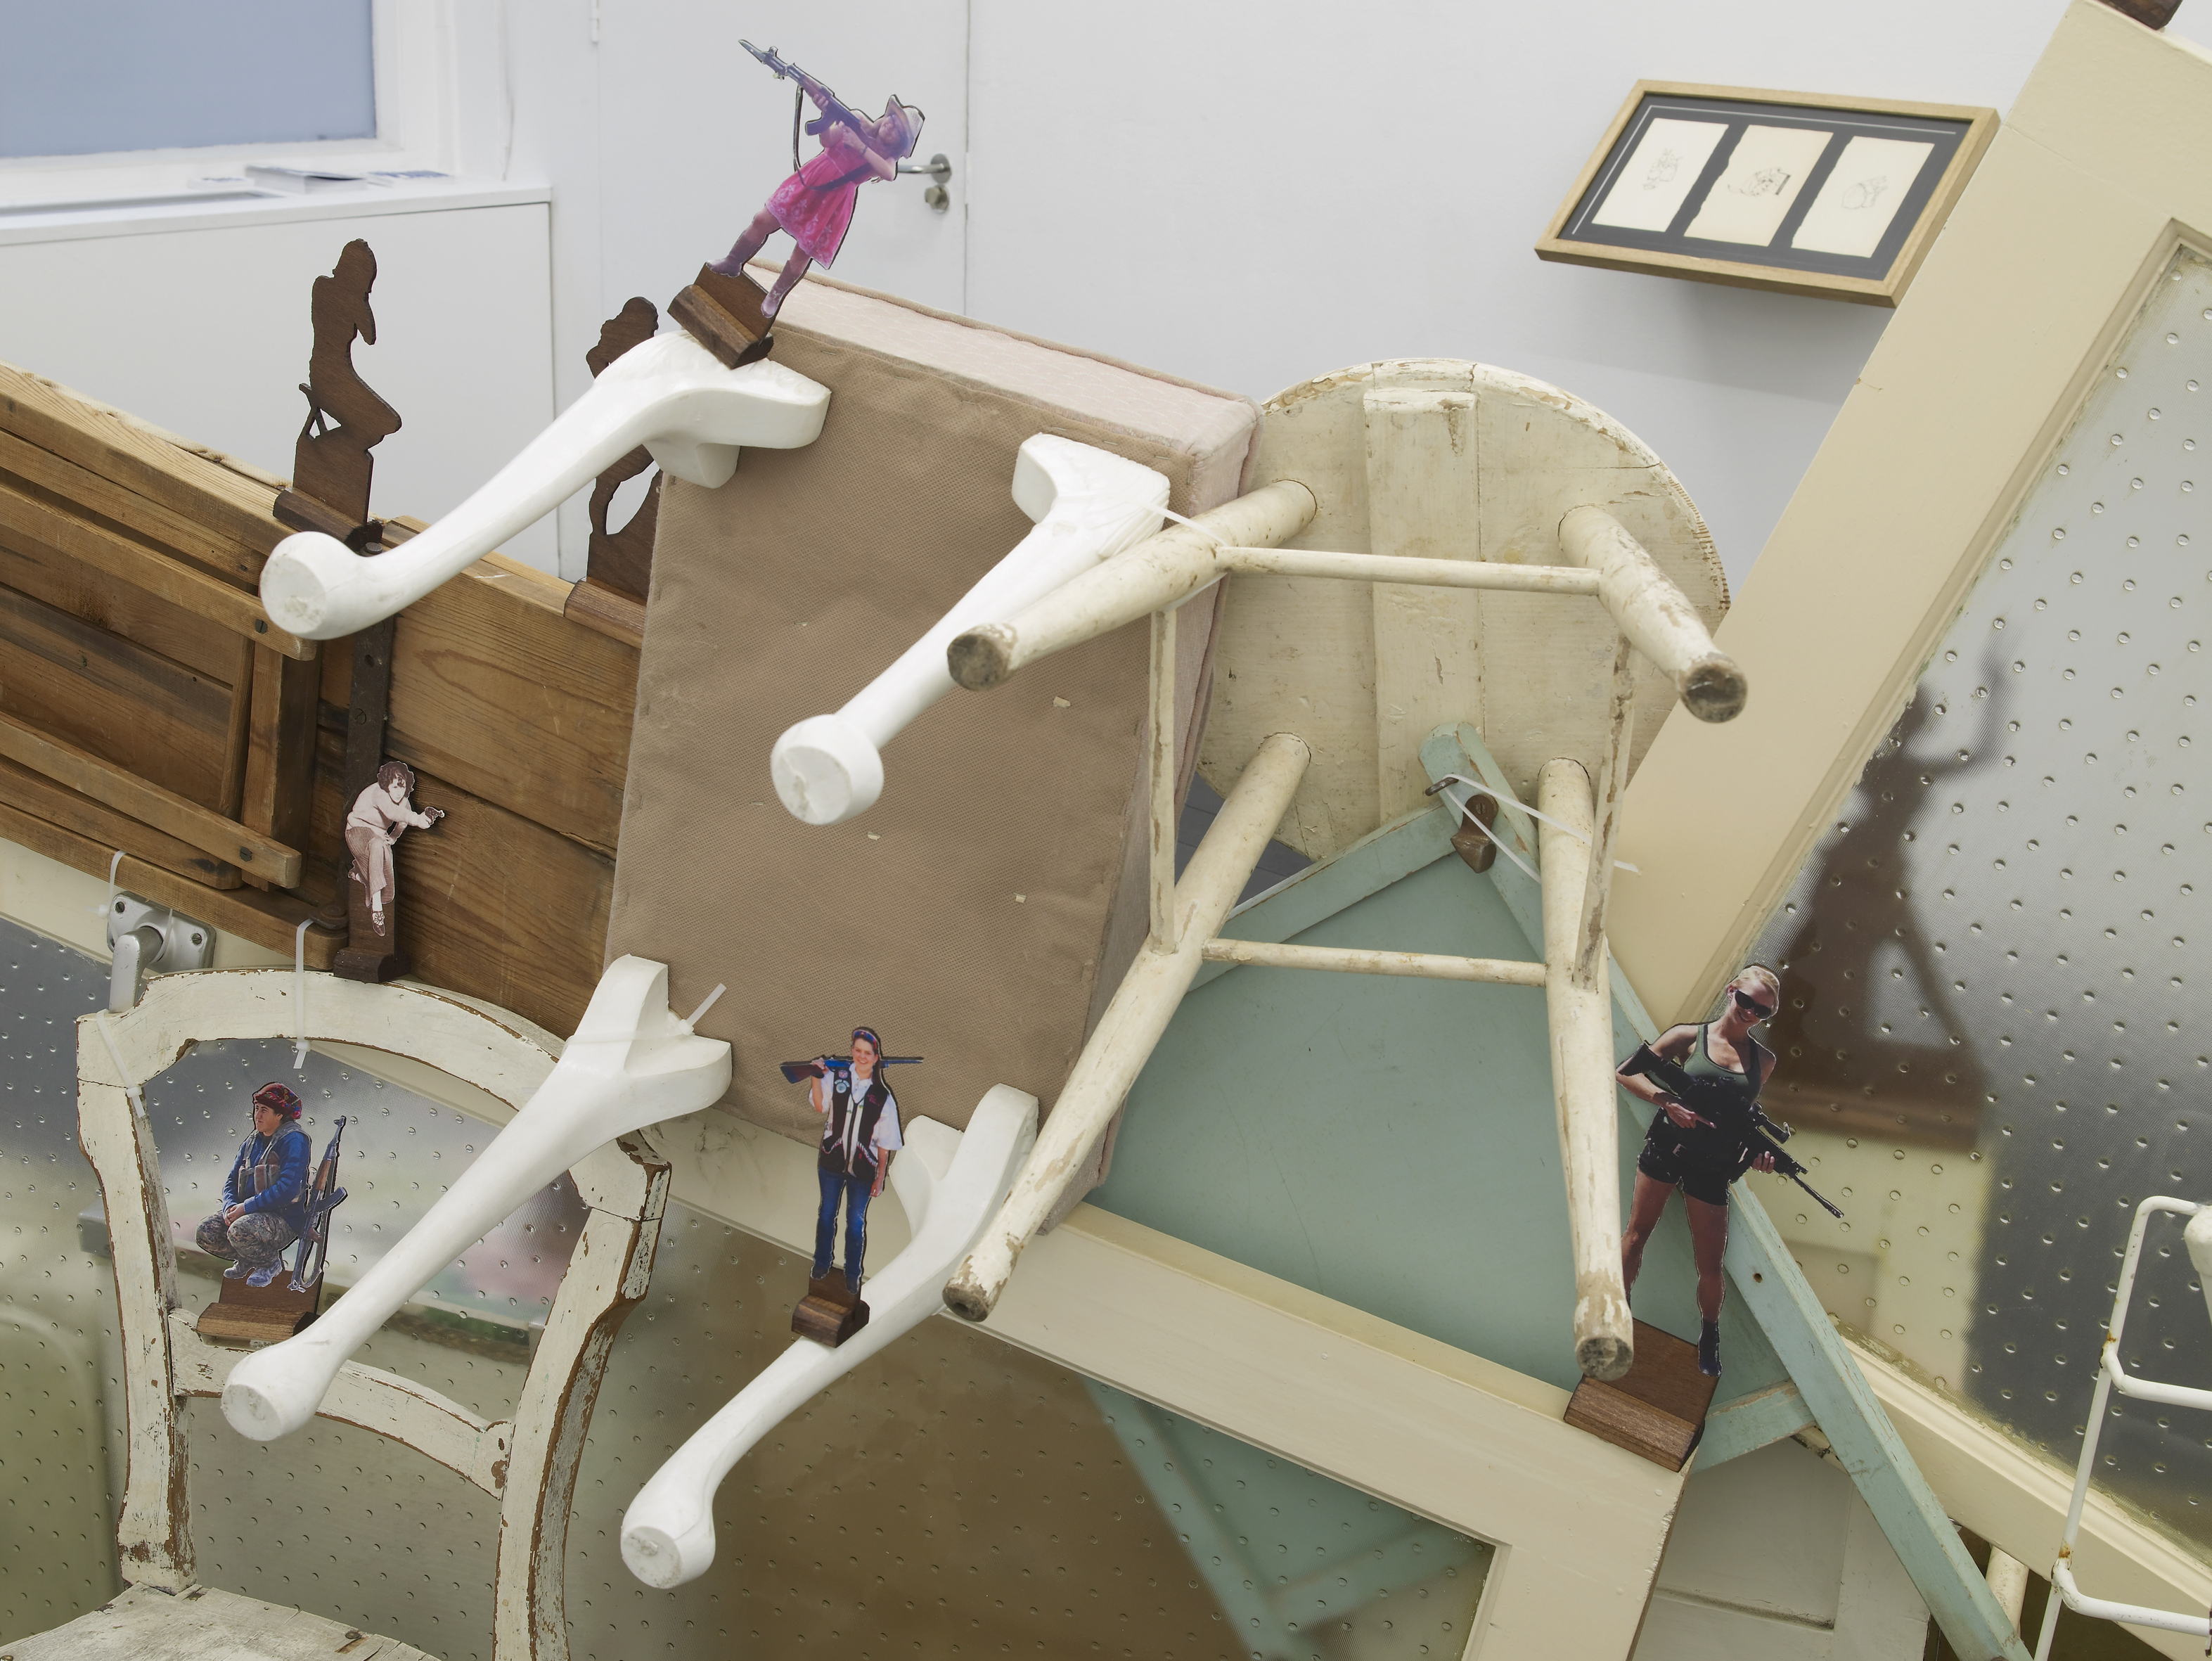 Paula Chambers, Domestic Front, 2018, site-specific installation at gallery l'étrangère, variable size